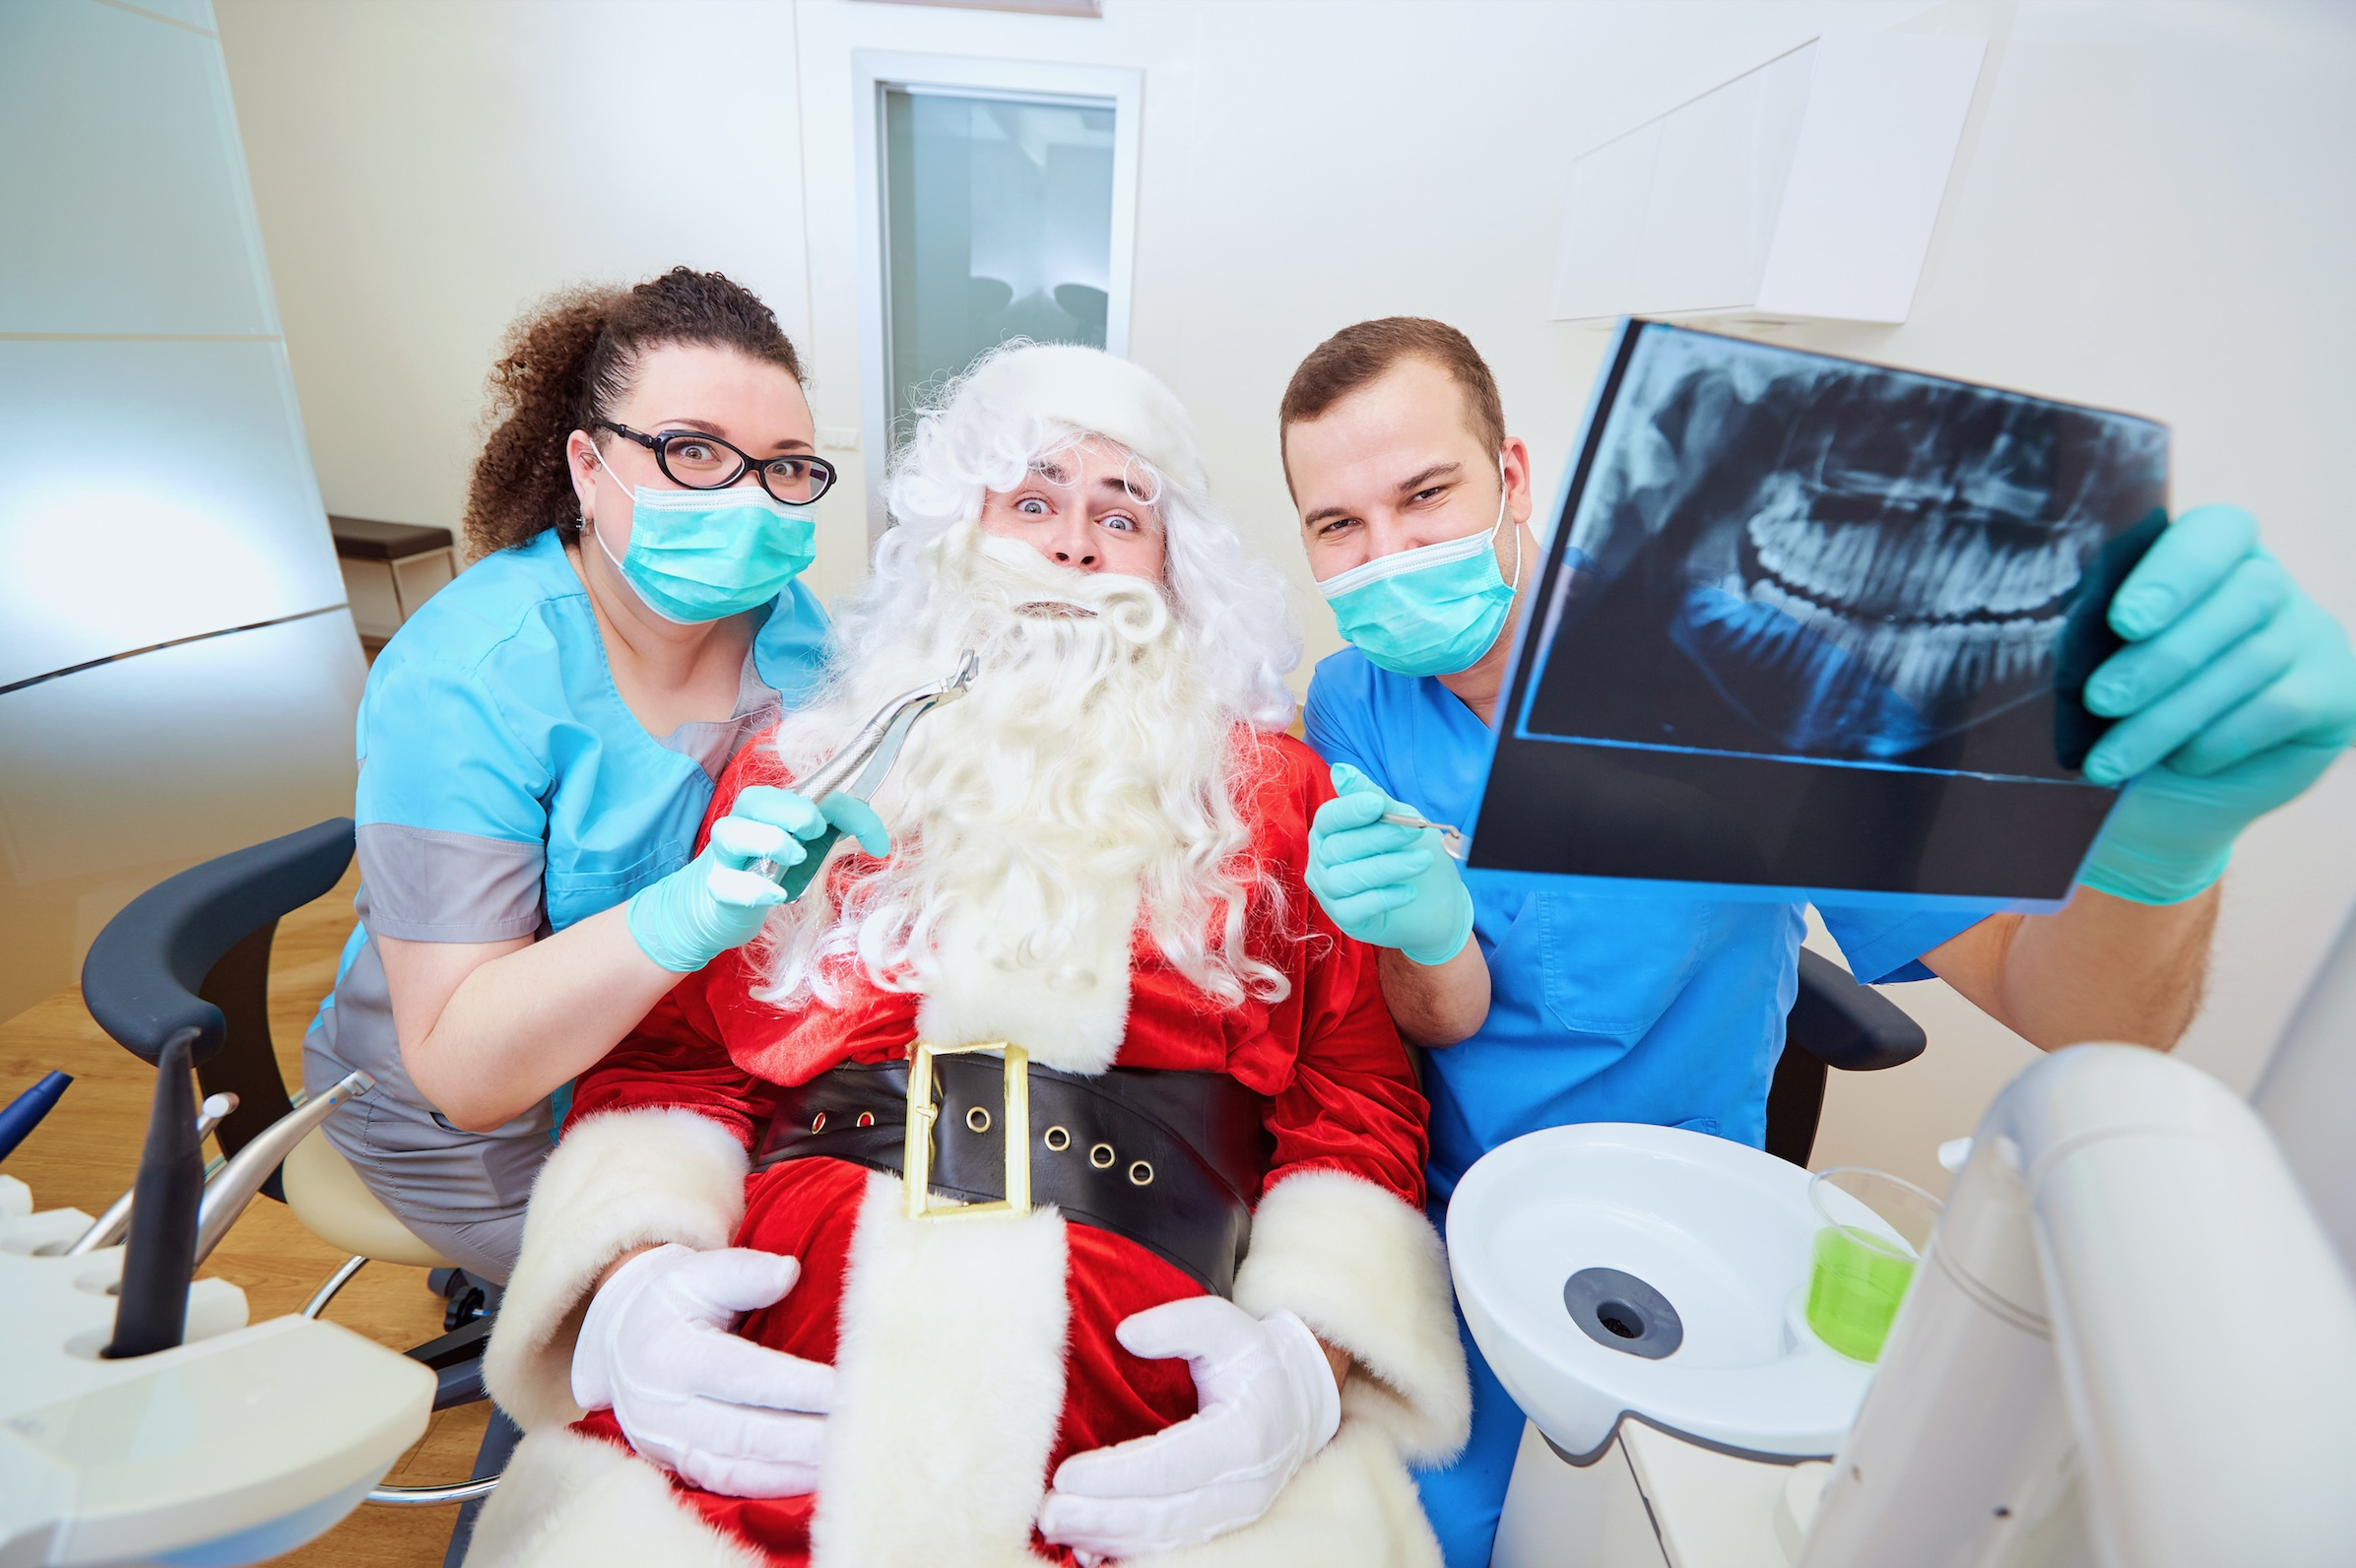 How can I find an emergency dentist over Christmas?